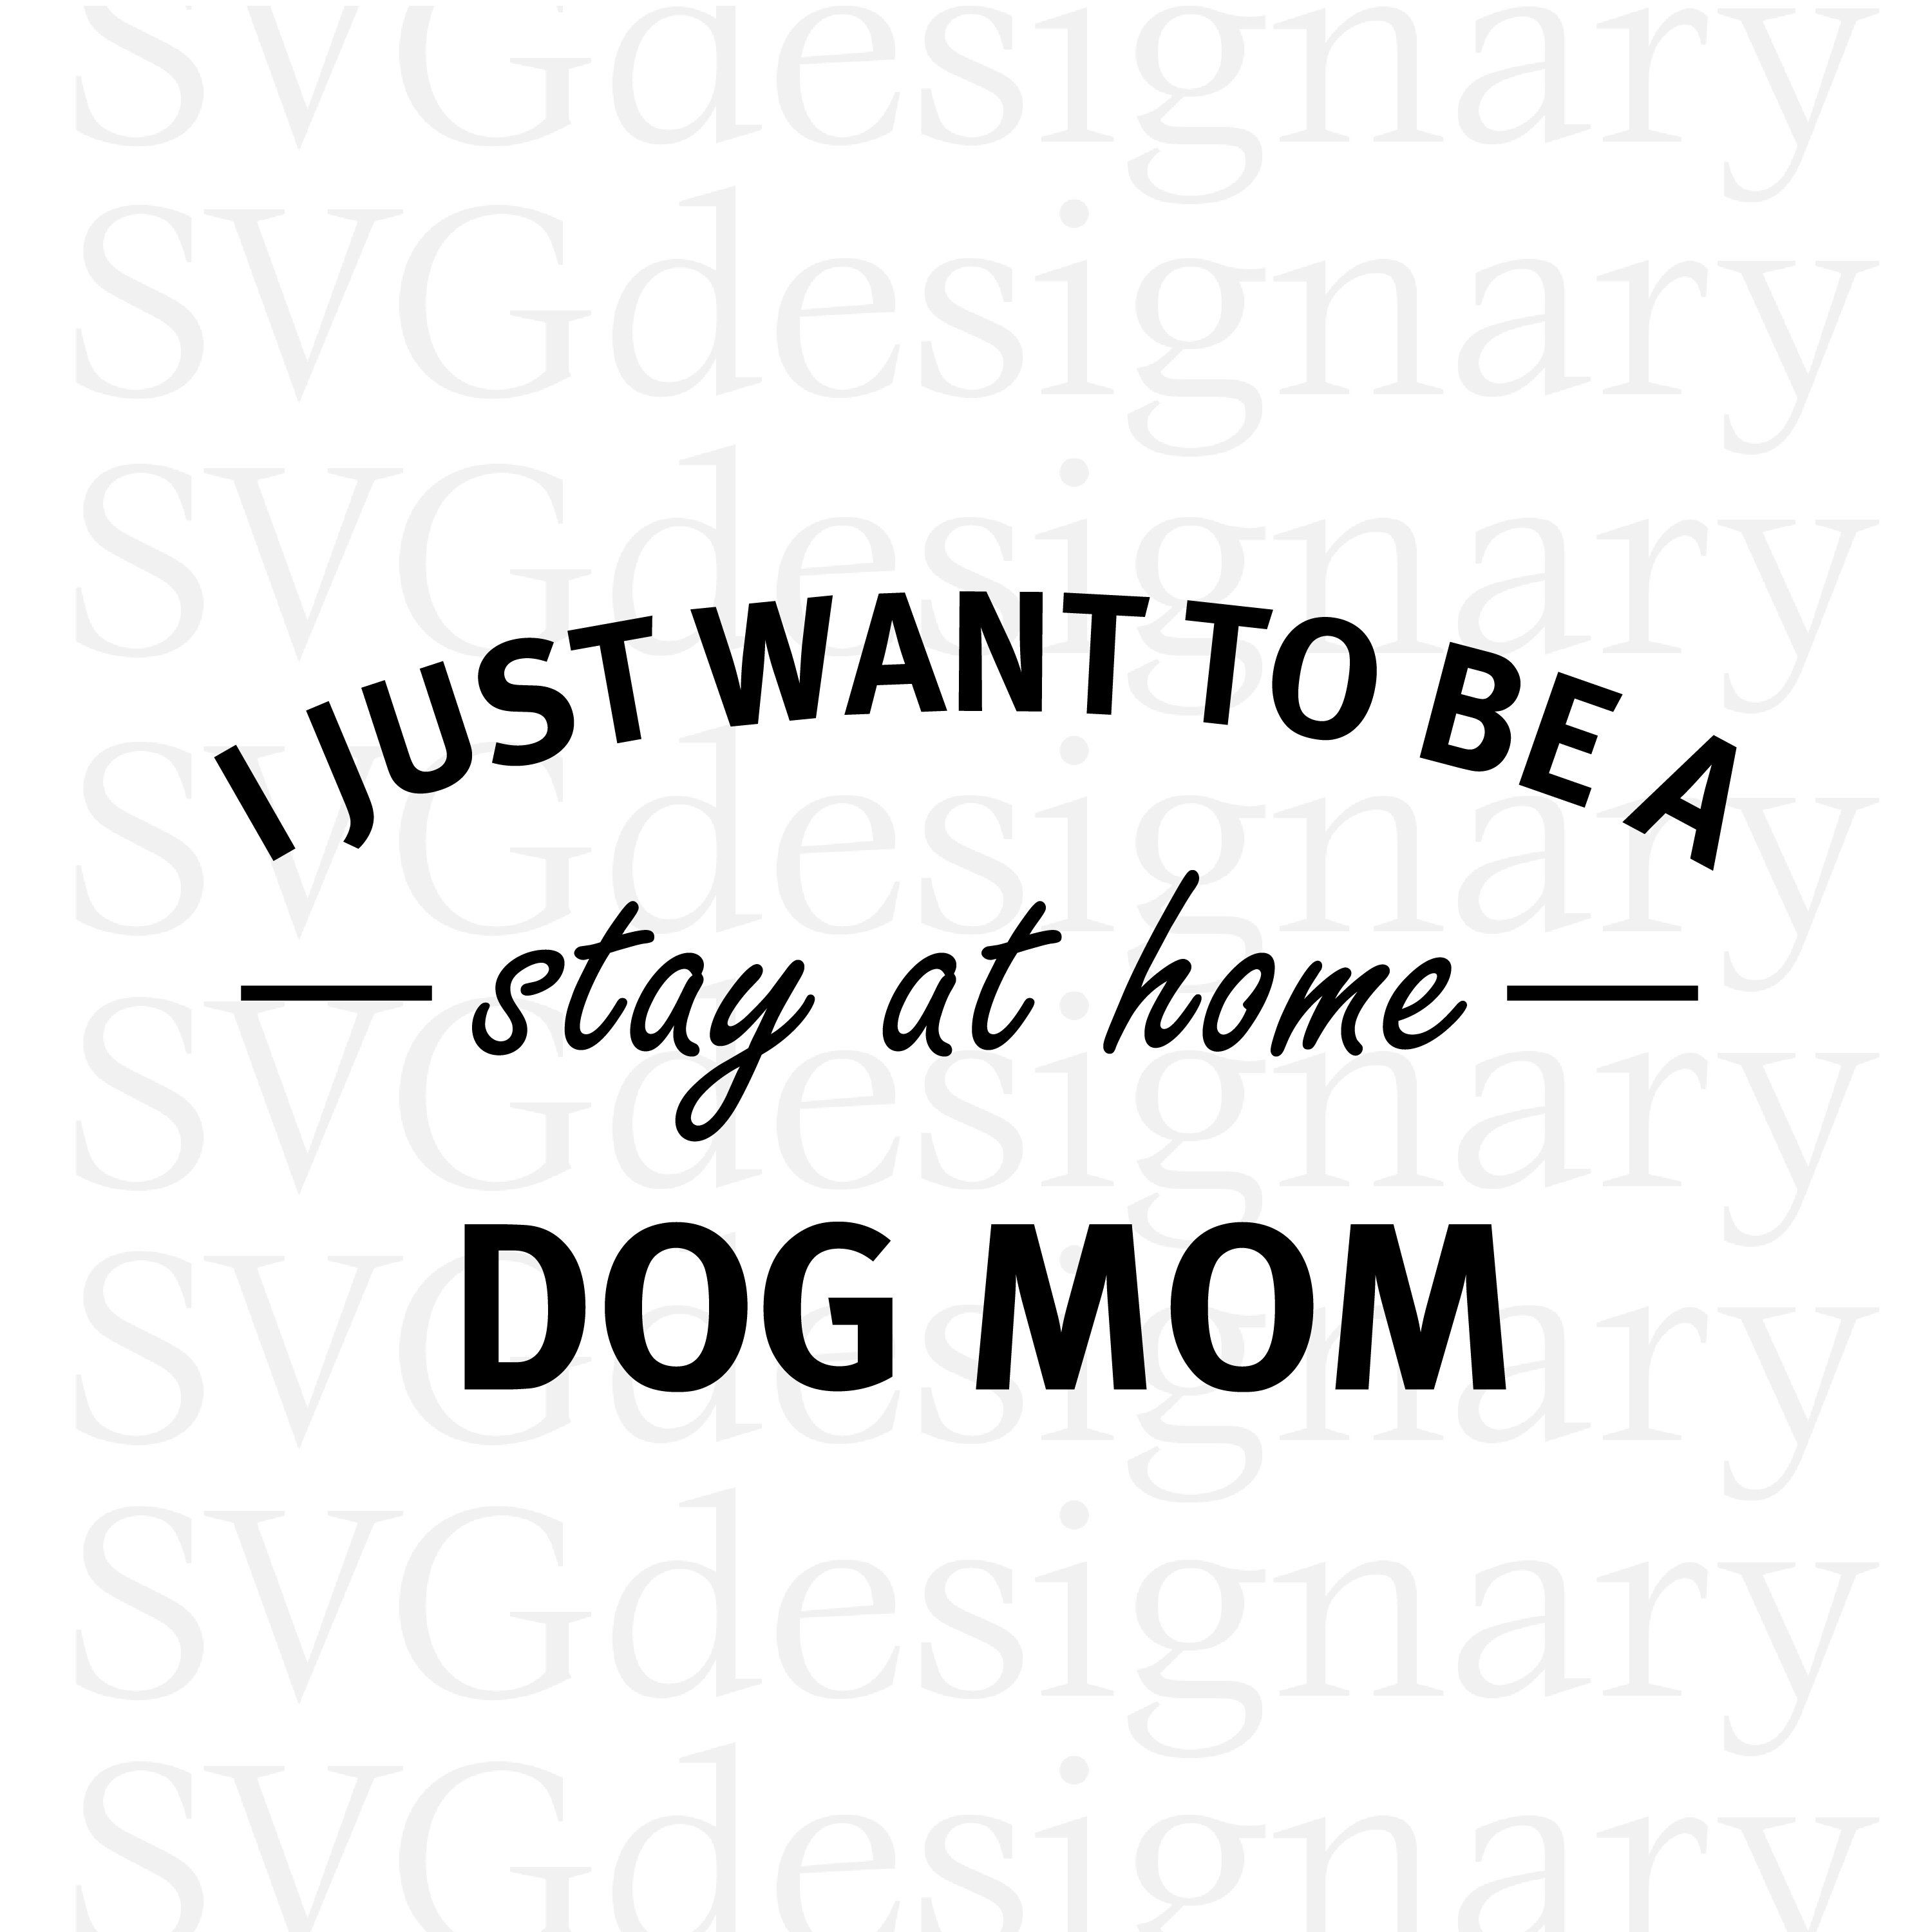 I Just Want To Be A Stay At Home Dog Mom SVG PNG Download